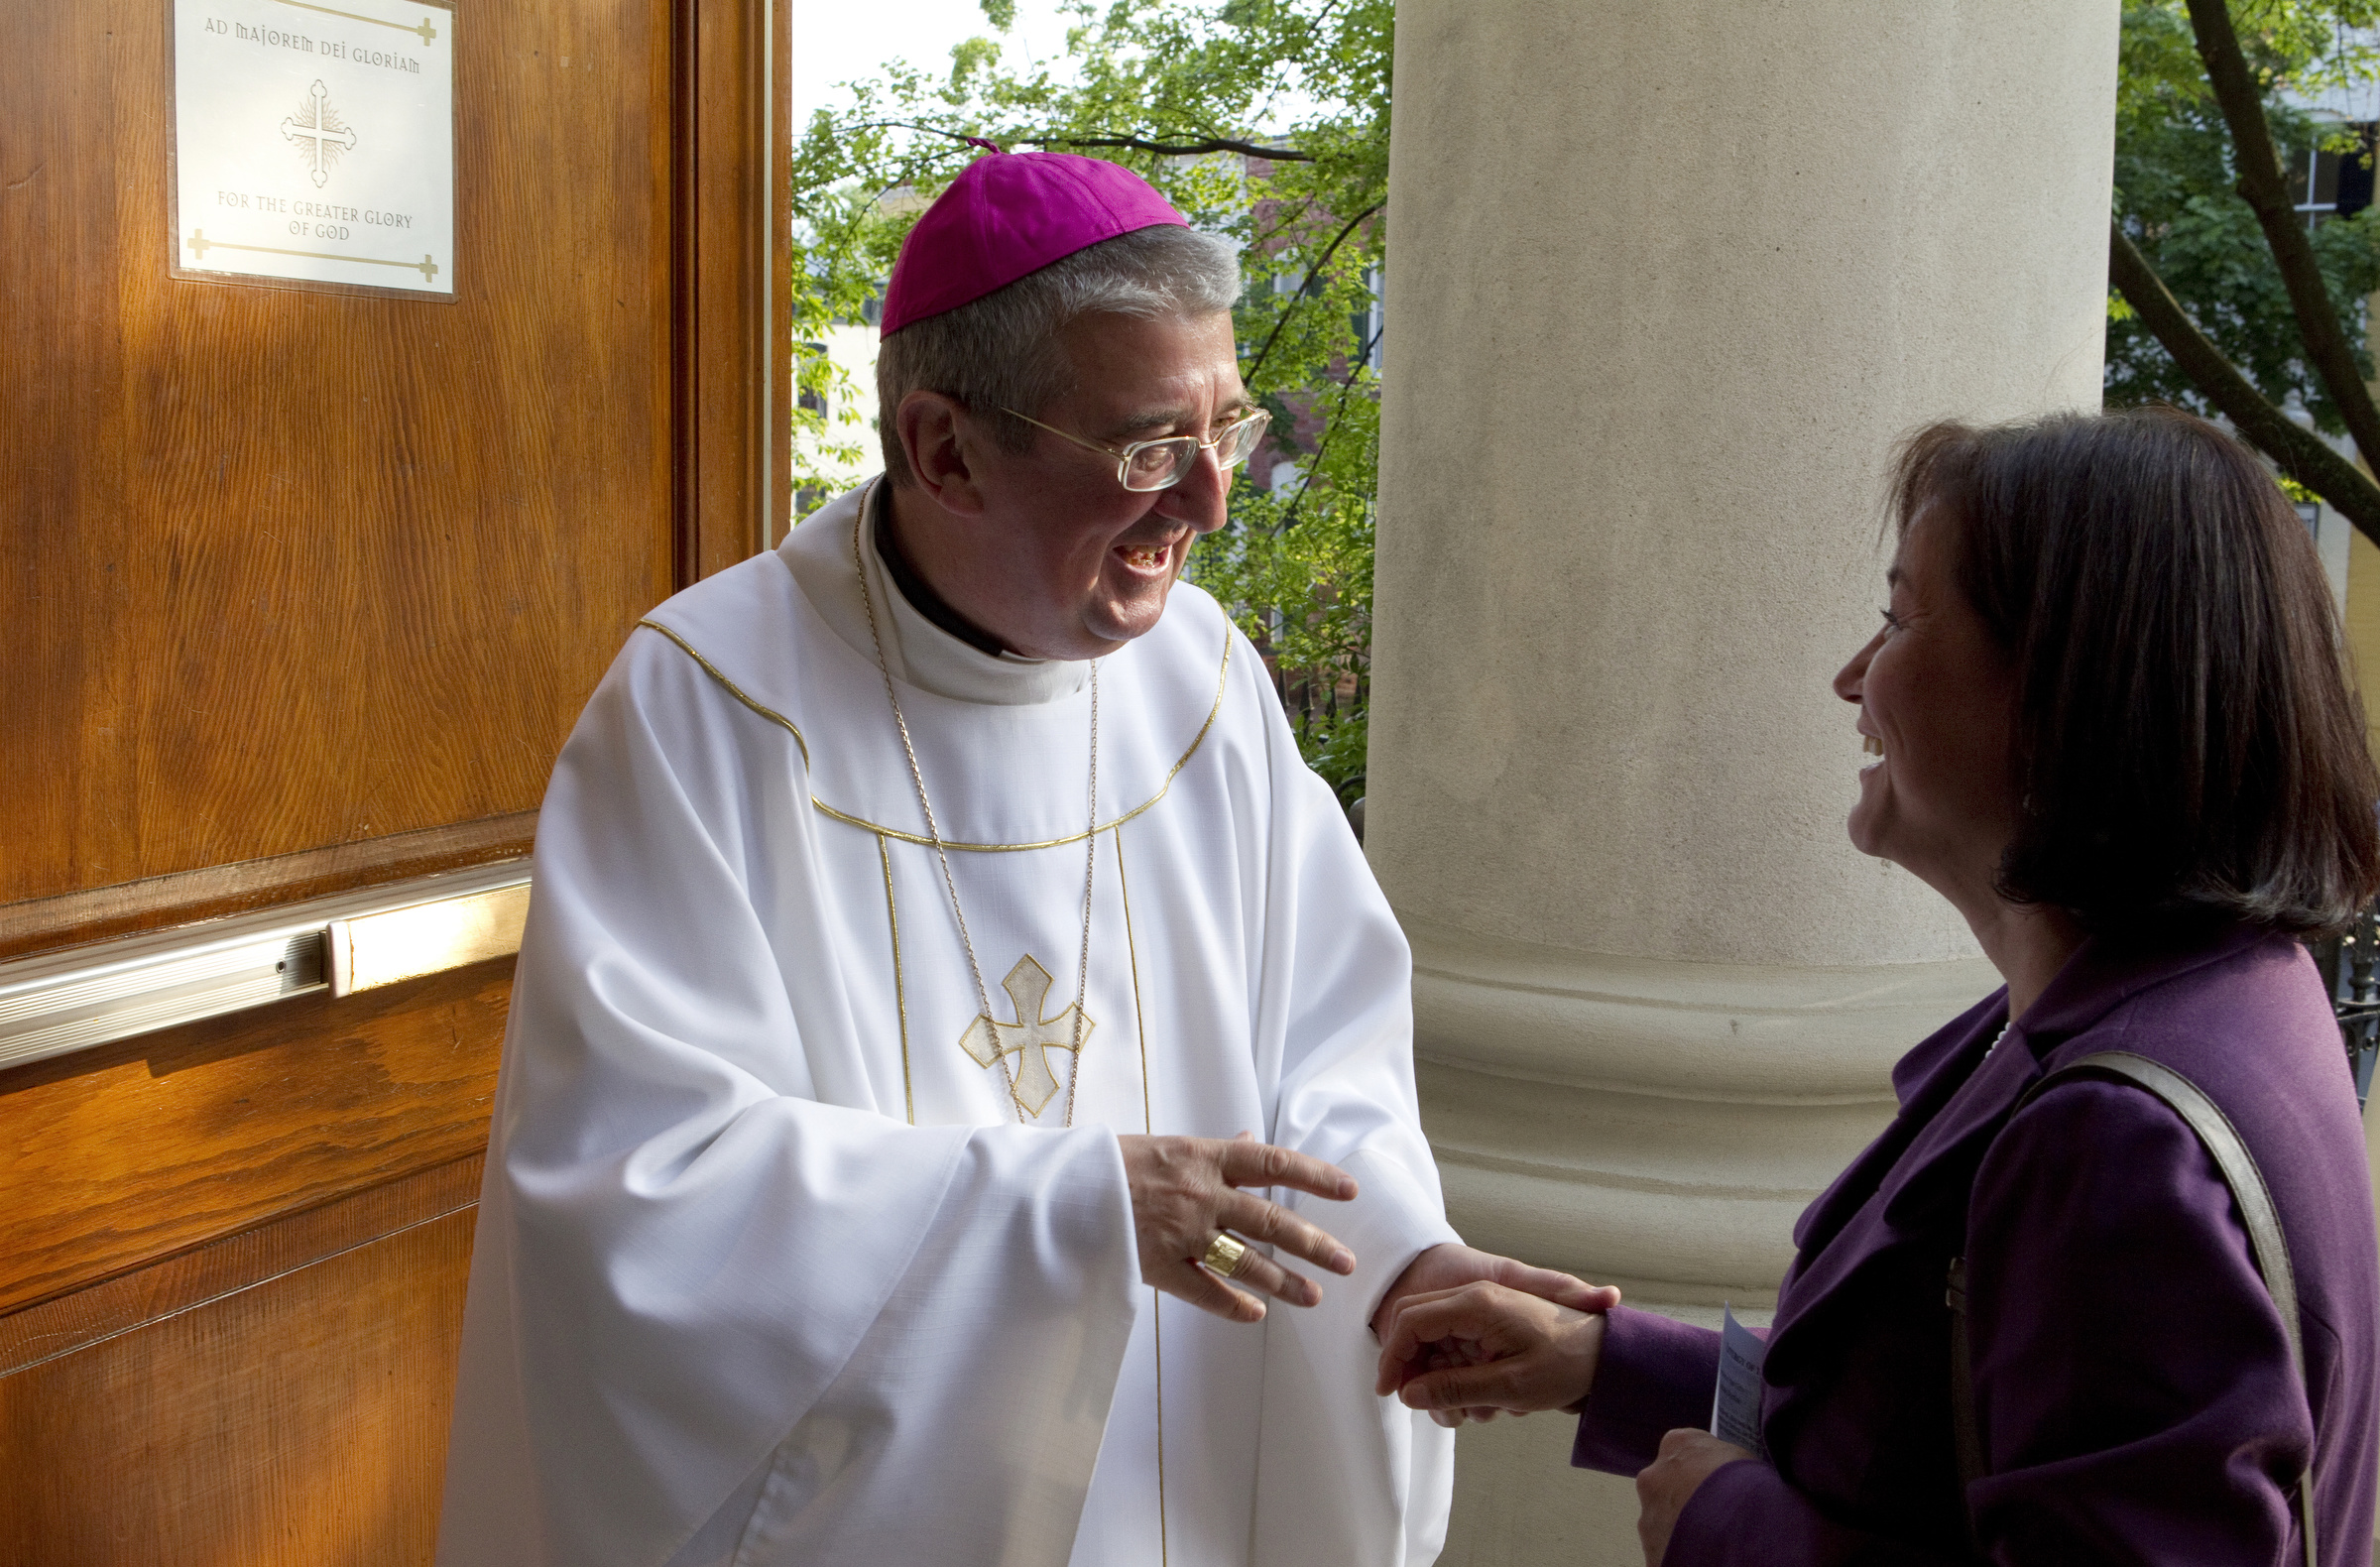 ARCHBISHOP MARTIN OF DUBLIN GREETS WOMAN OUTSIDE WASHINGTON CHURCH